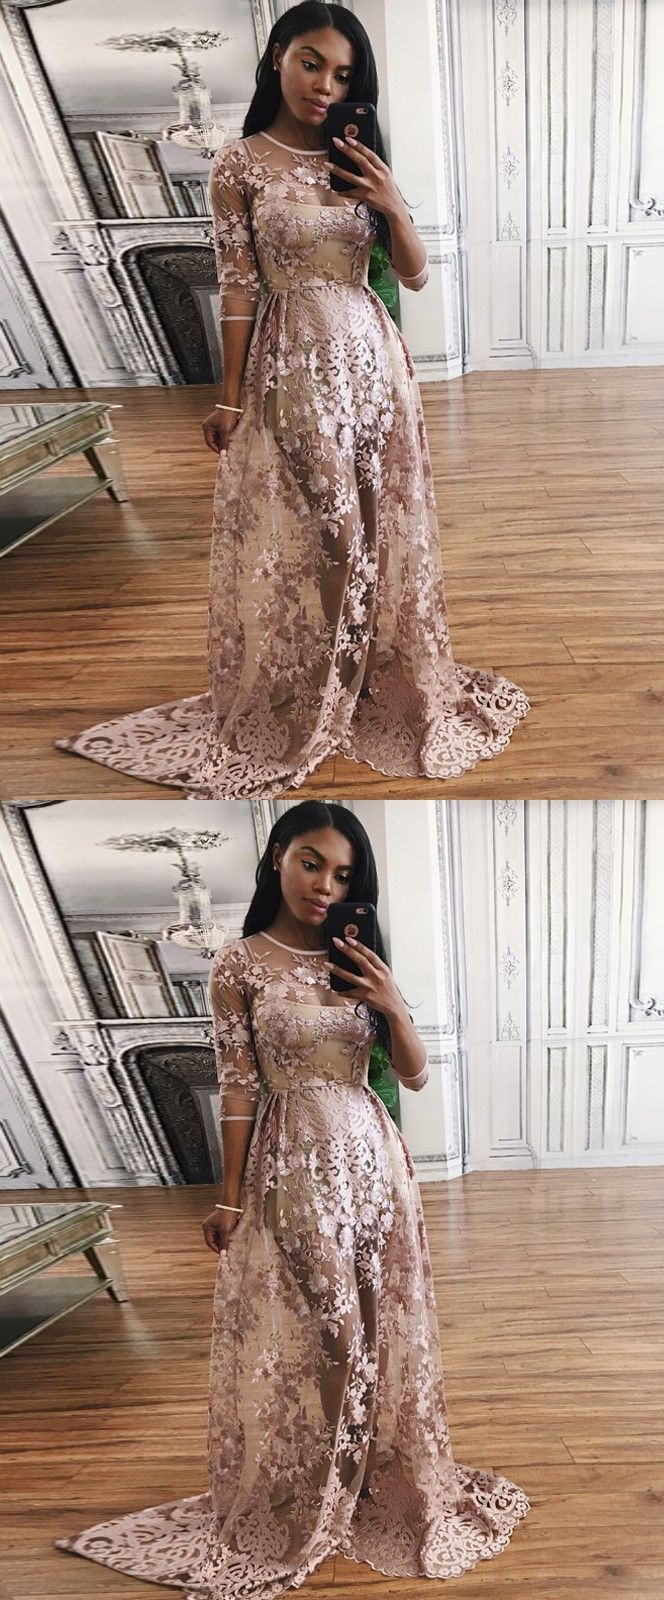 fashion prom party dresses with appliques, chic blush evening gowns with long sleeves for special occasion.